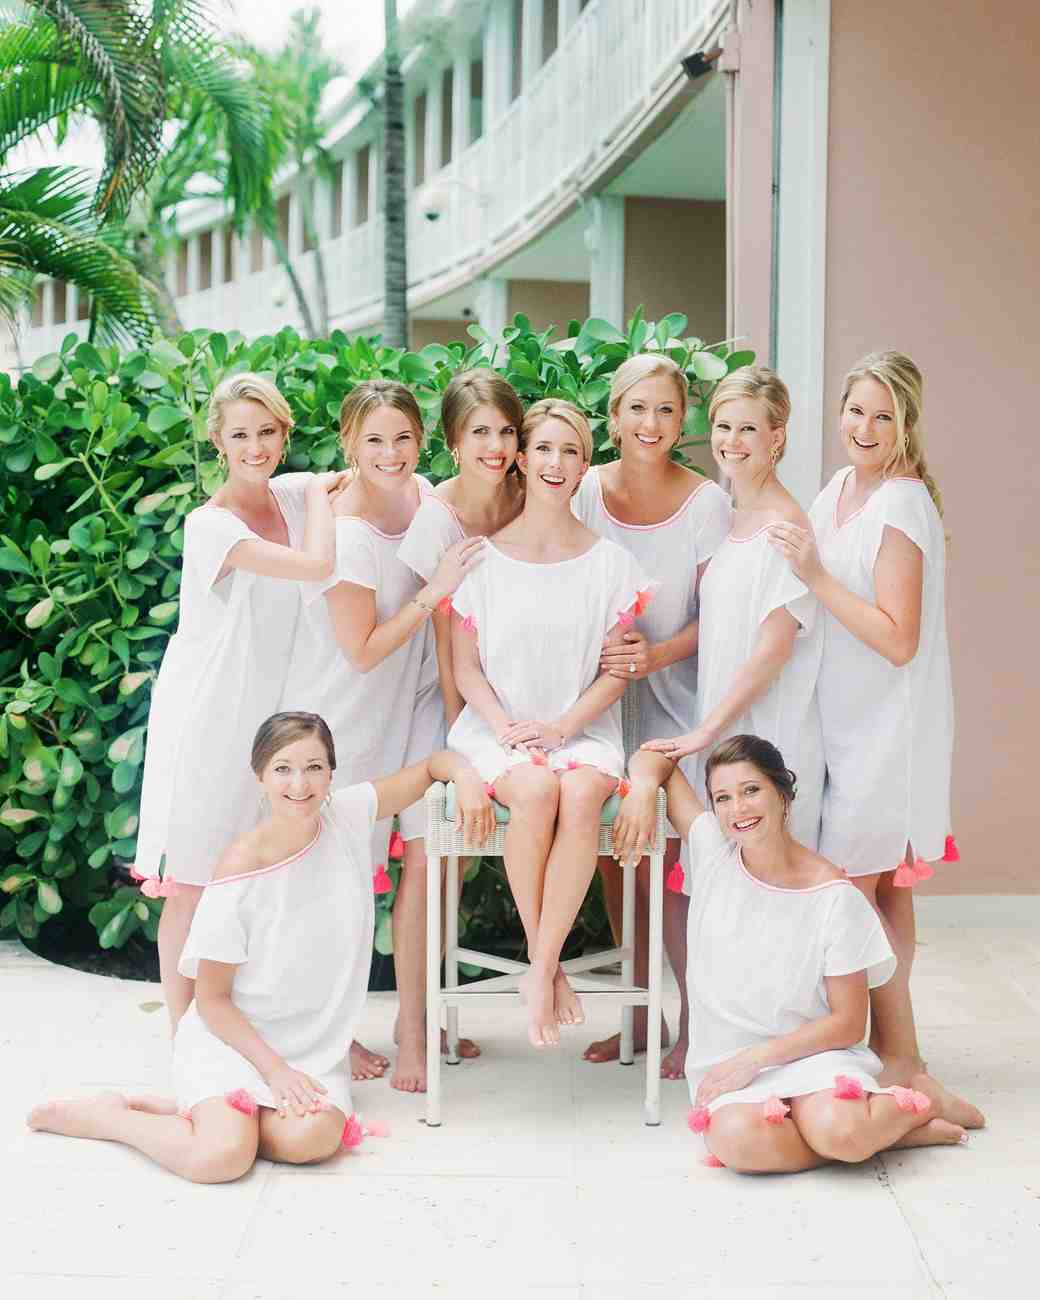 207f0ea495 Bridesmaids  Robes Alternatives to Set You and Your  Maids Apart ...